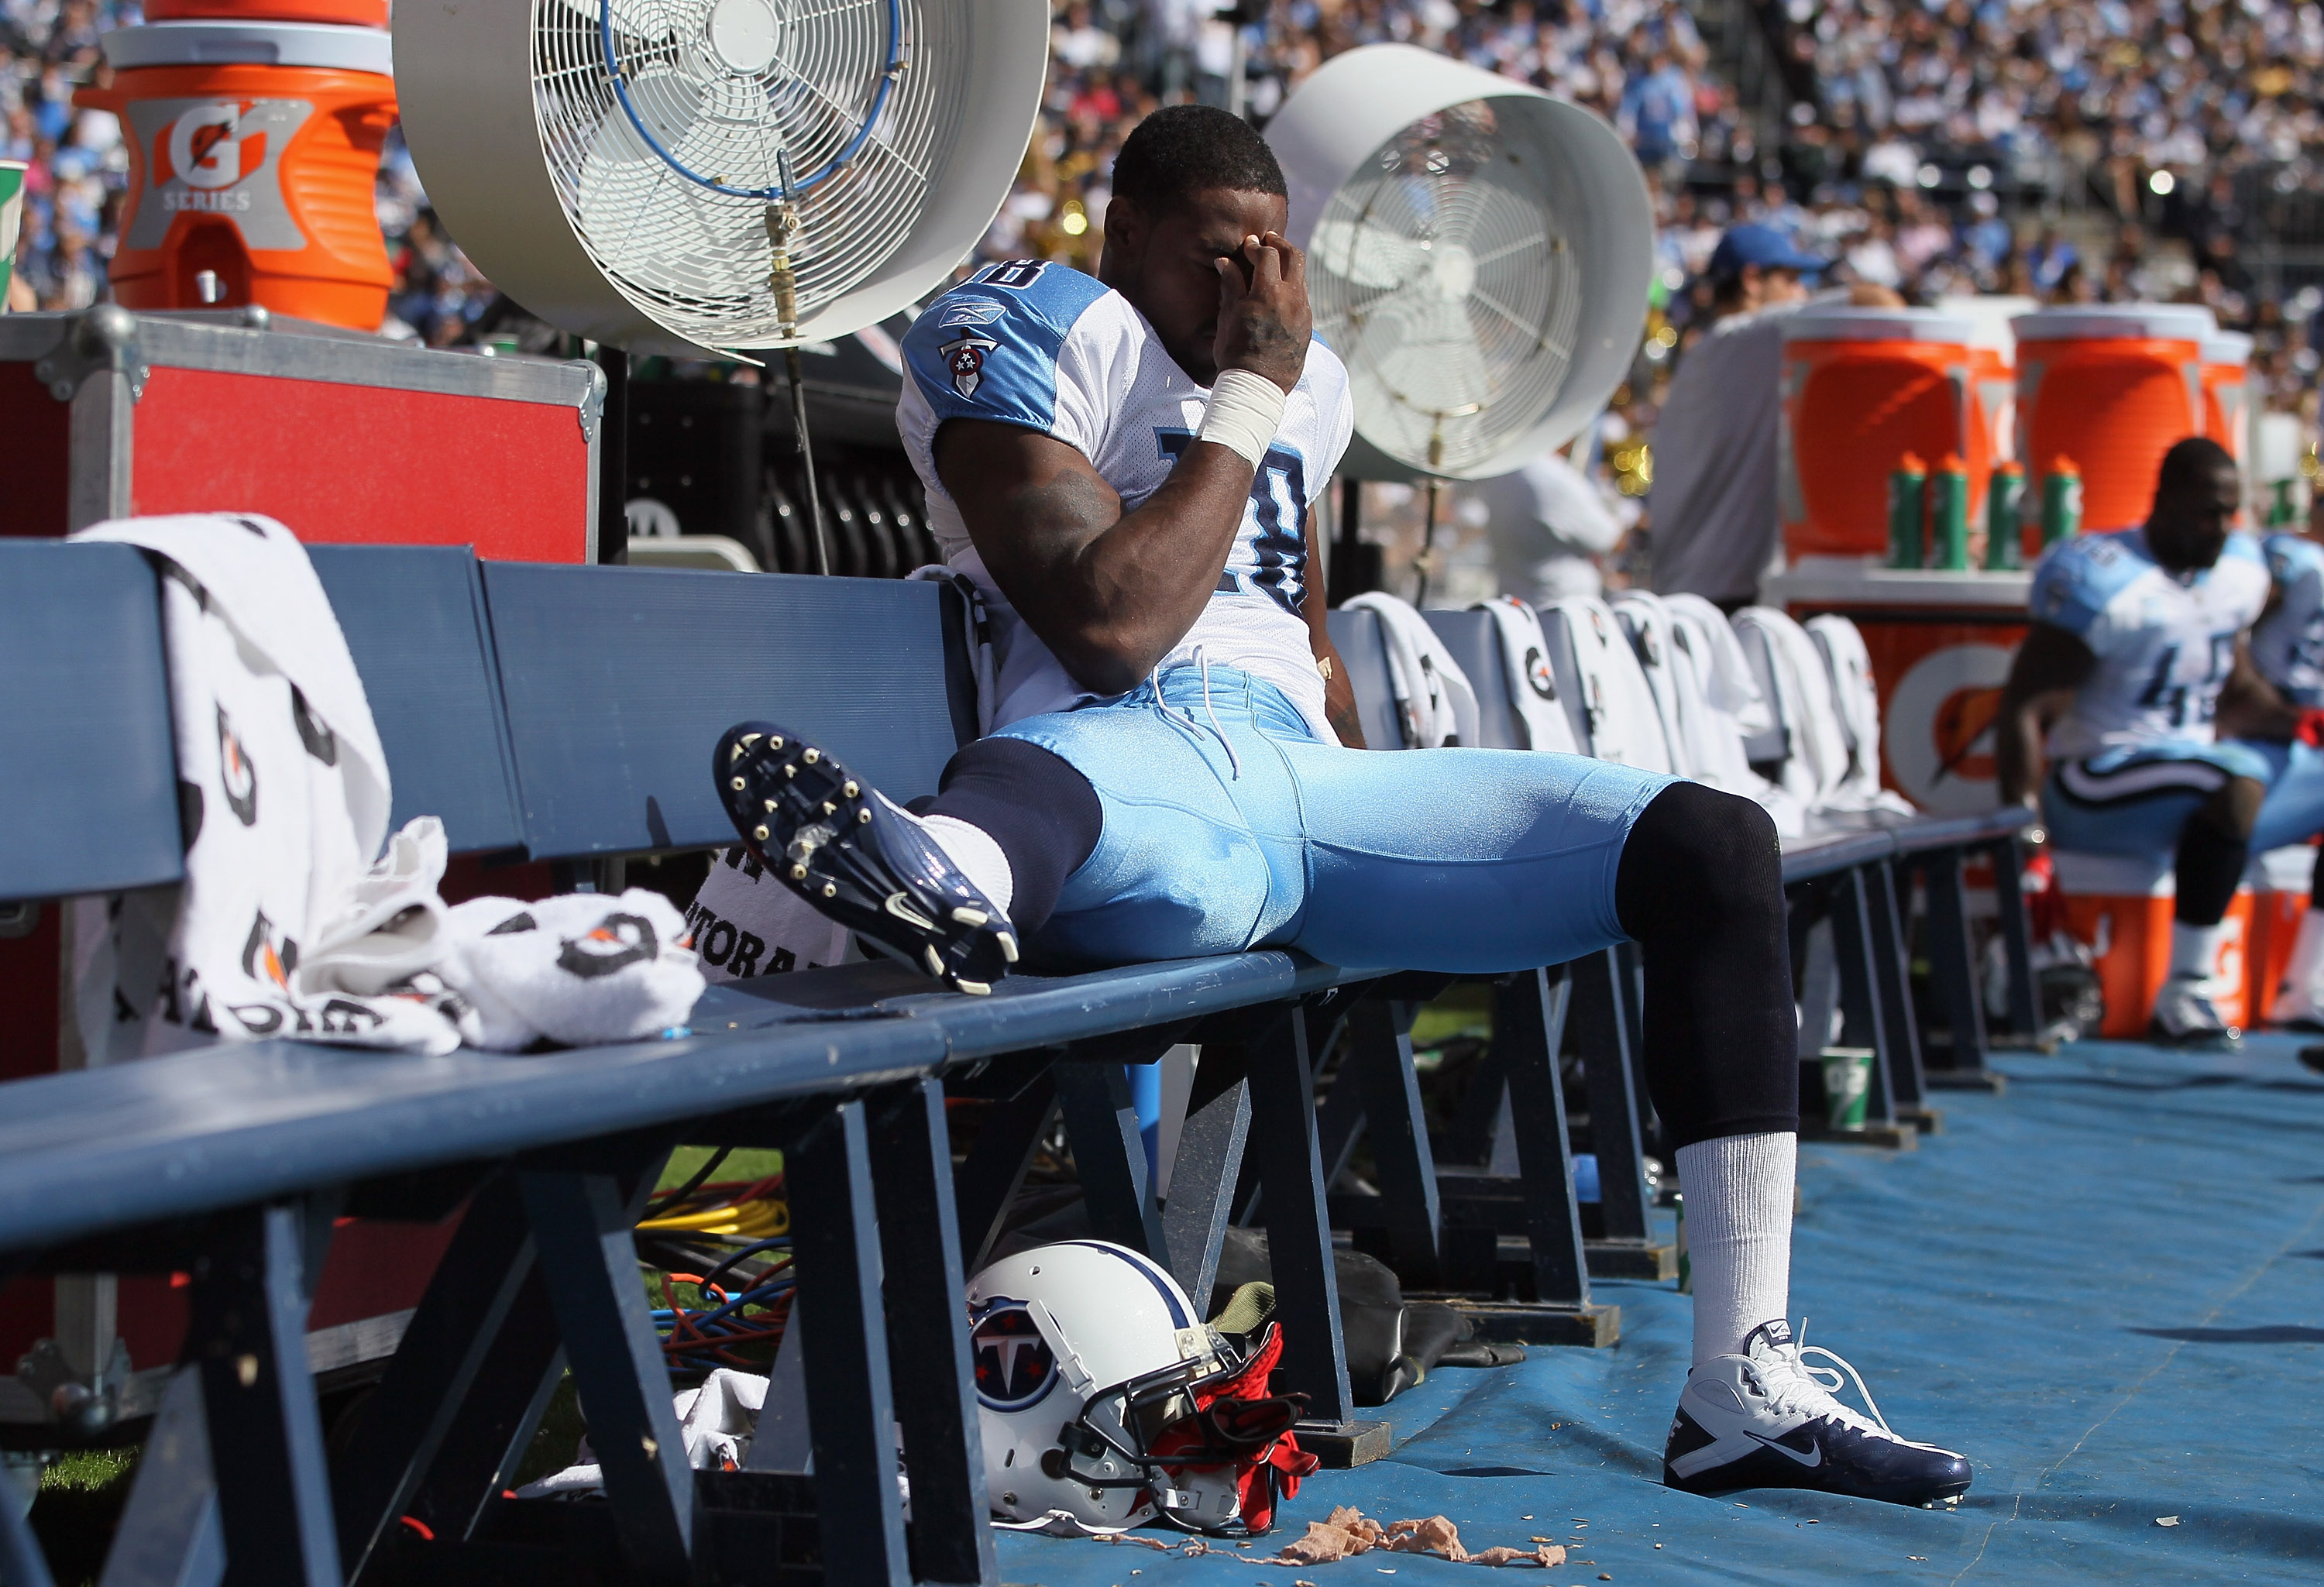 SAN DIEGO - OCTOBER 31:  Wide receiver Kenny Britt #18 of the Tennessee Titans sits on the bench after injuring his leg in the first quarter against the San Diego Chargers at Qualcomm Stadium on October 31, 2010 in San Diego, California.  (Photo by Jeff G